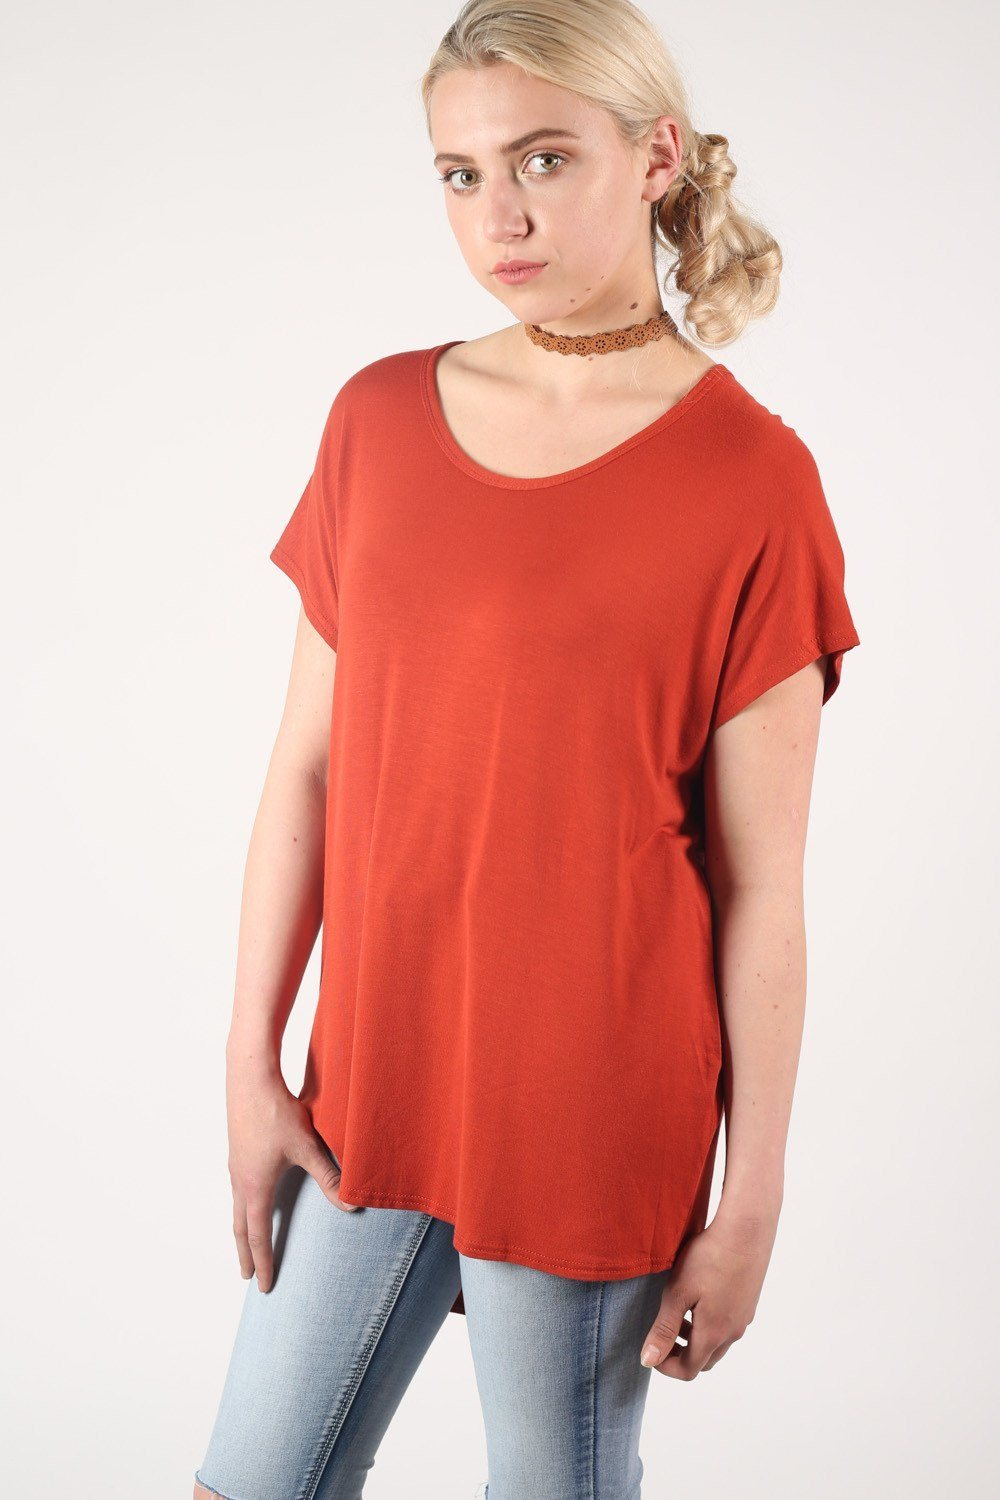 High Low Hem Plain Oversized Top in Rust Orange 0